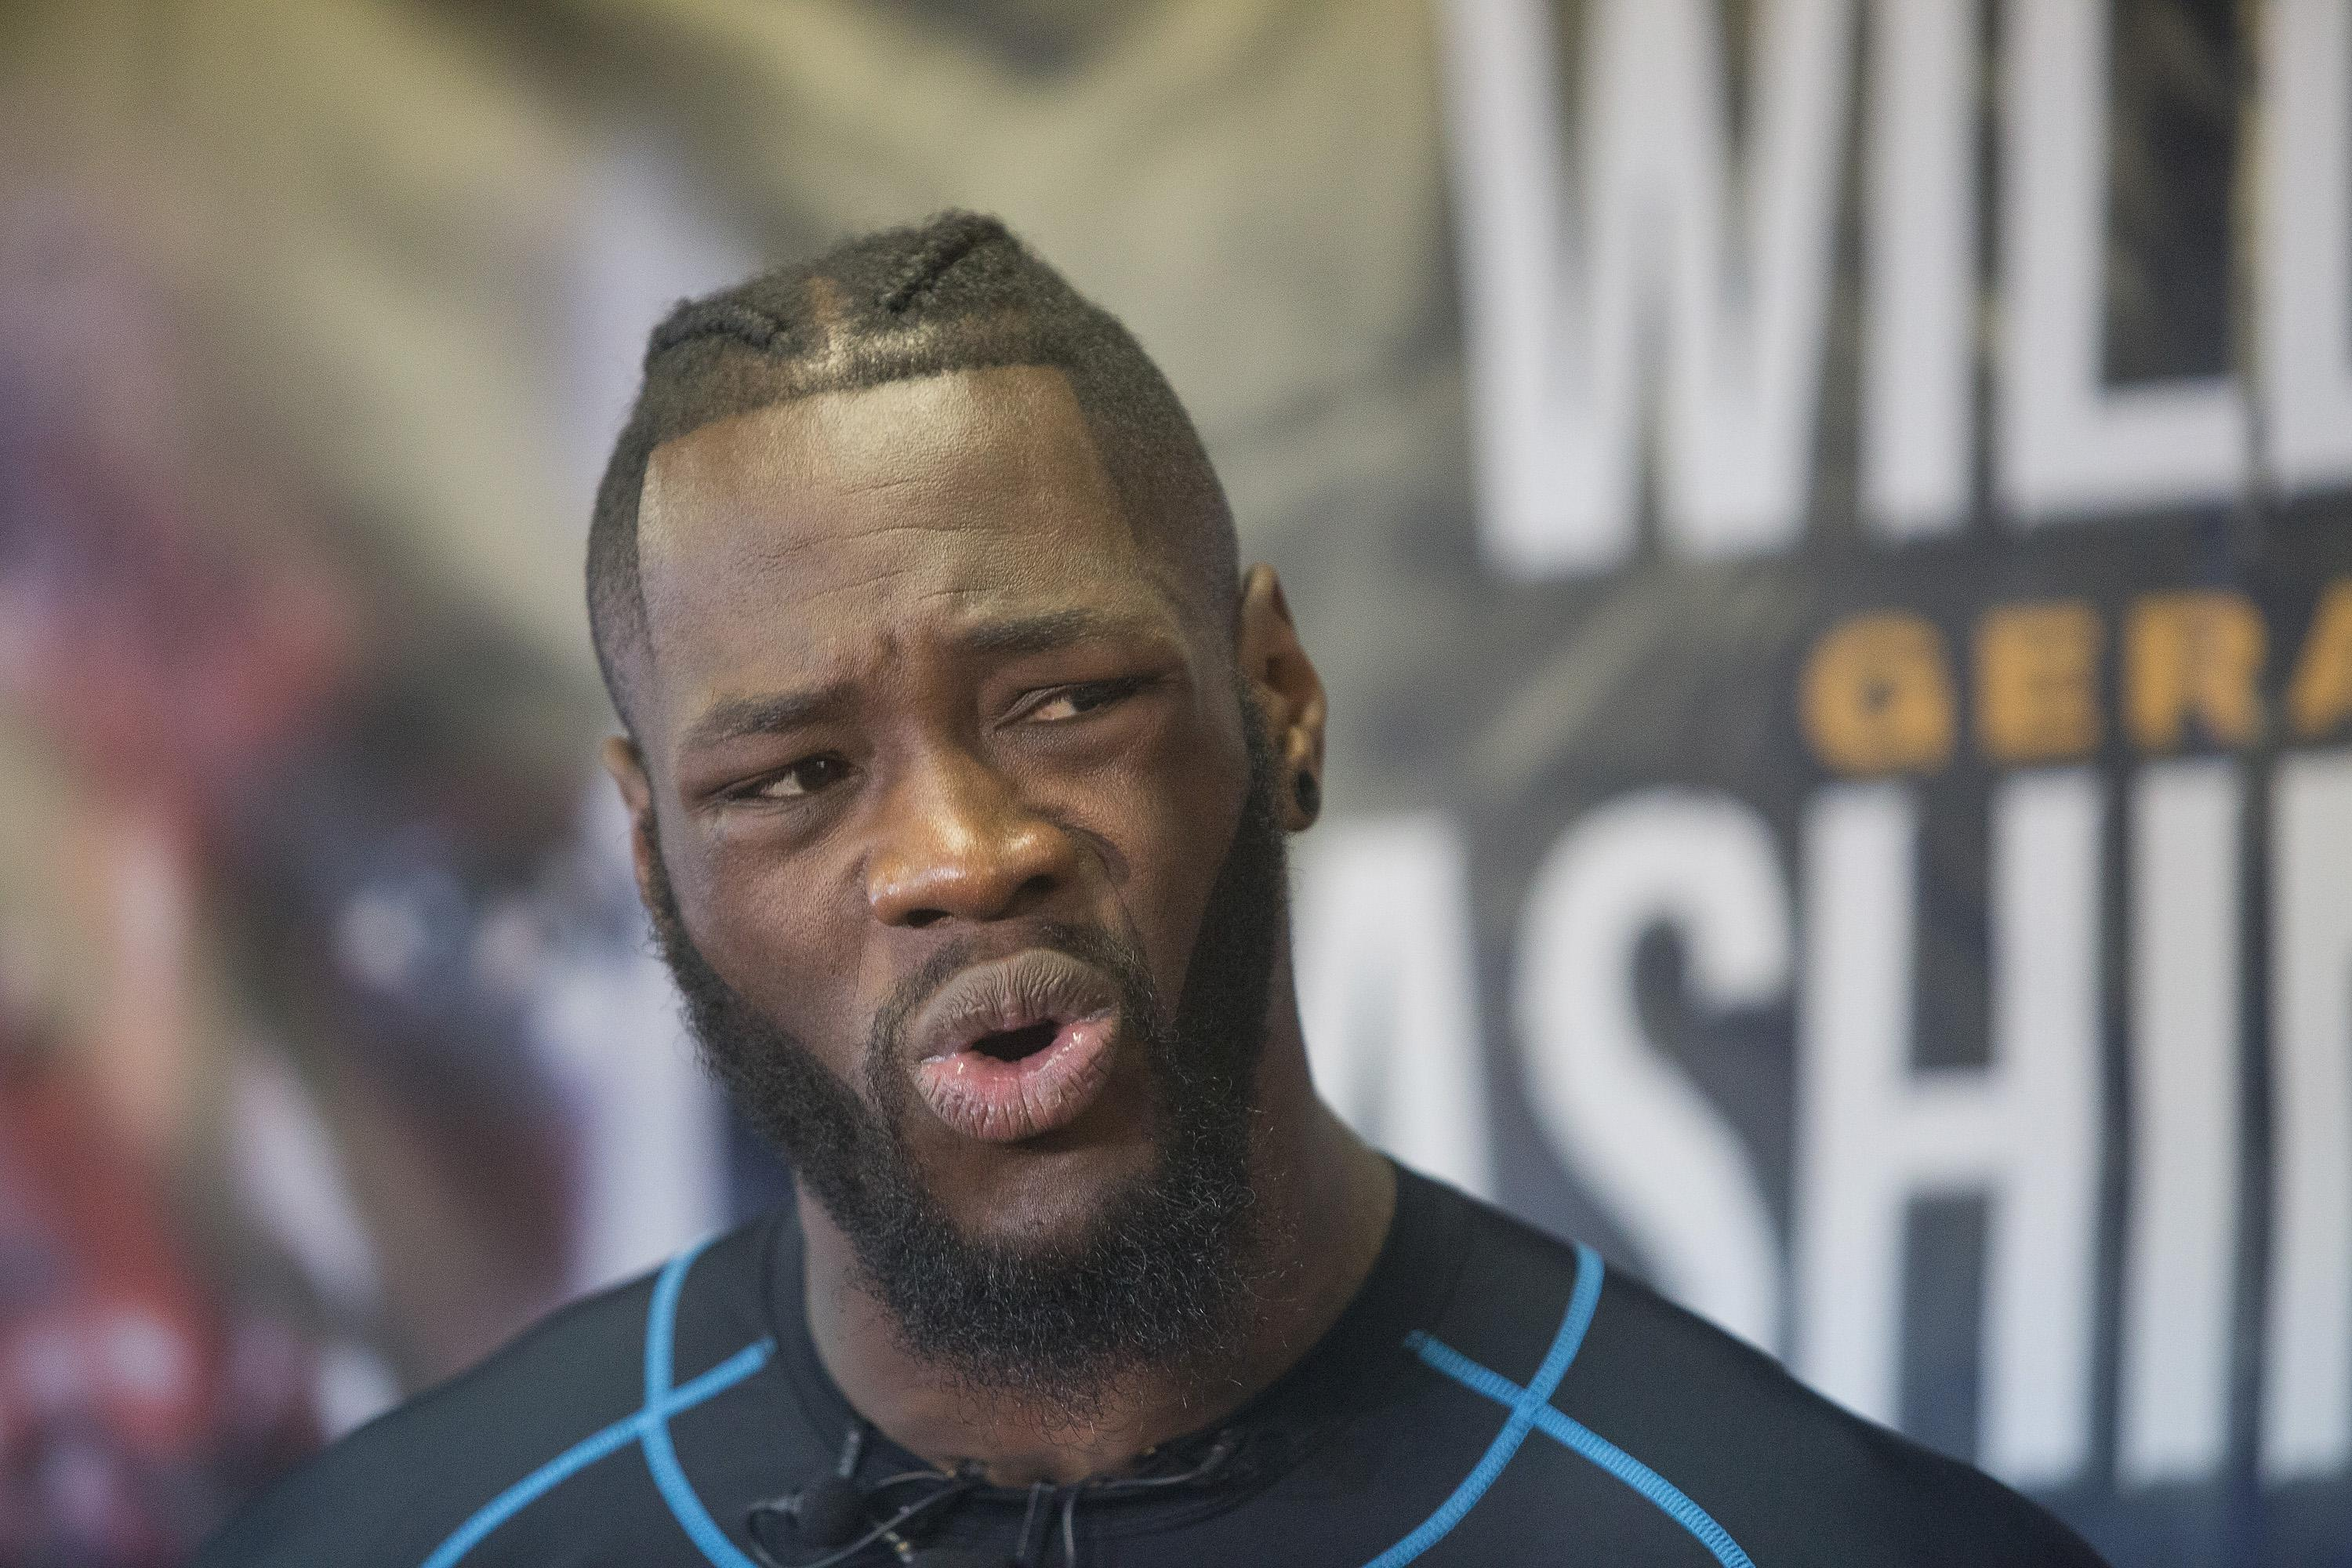 Deontay Wilder took to Twitter to share his thoughts after talks of a unification fight broke down